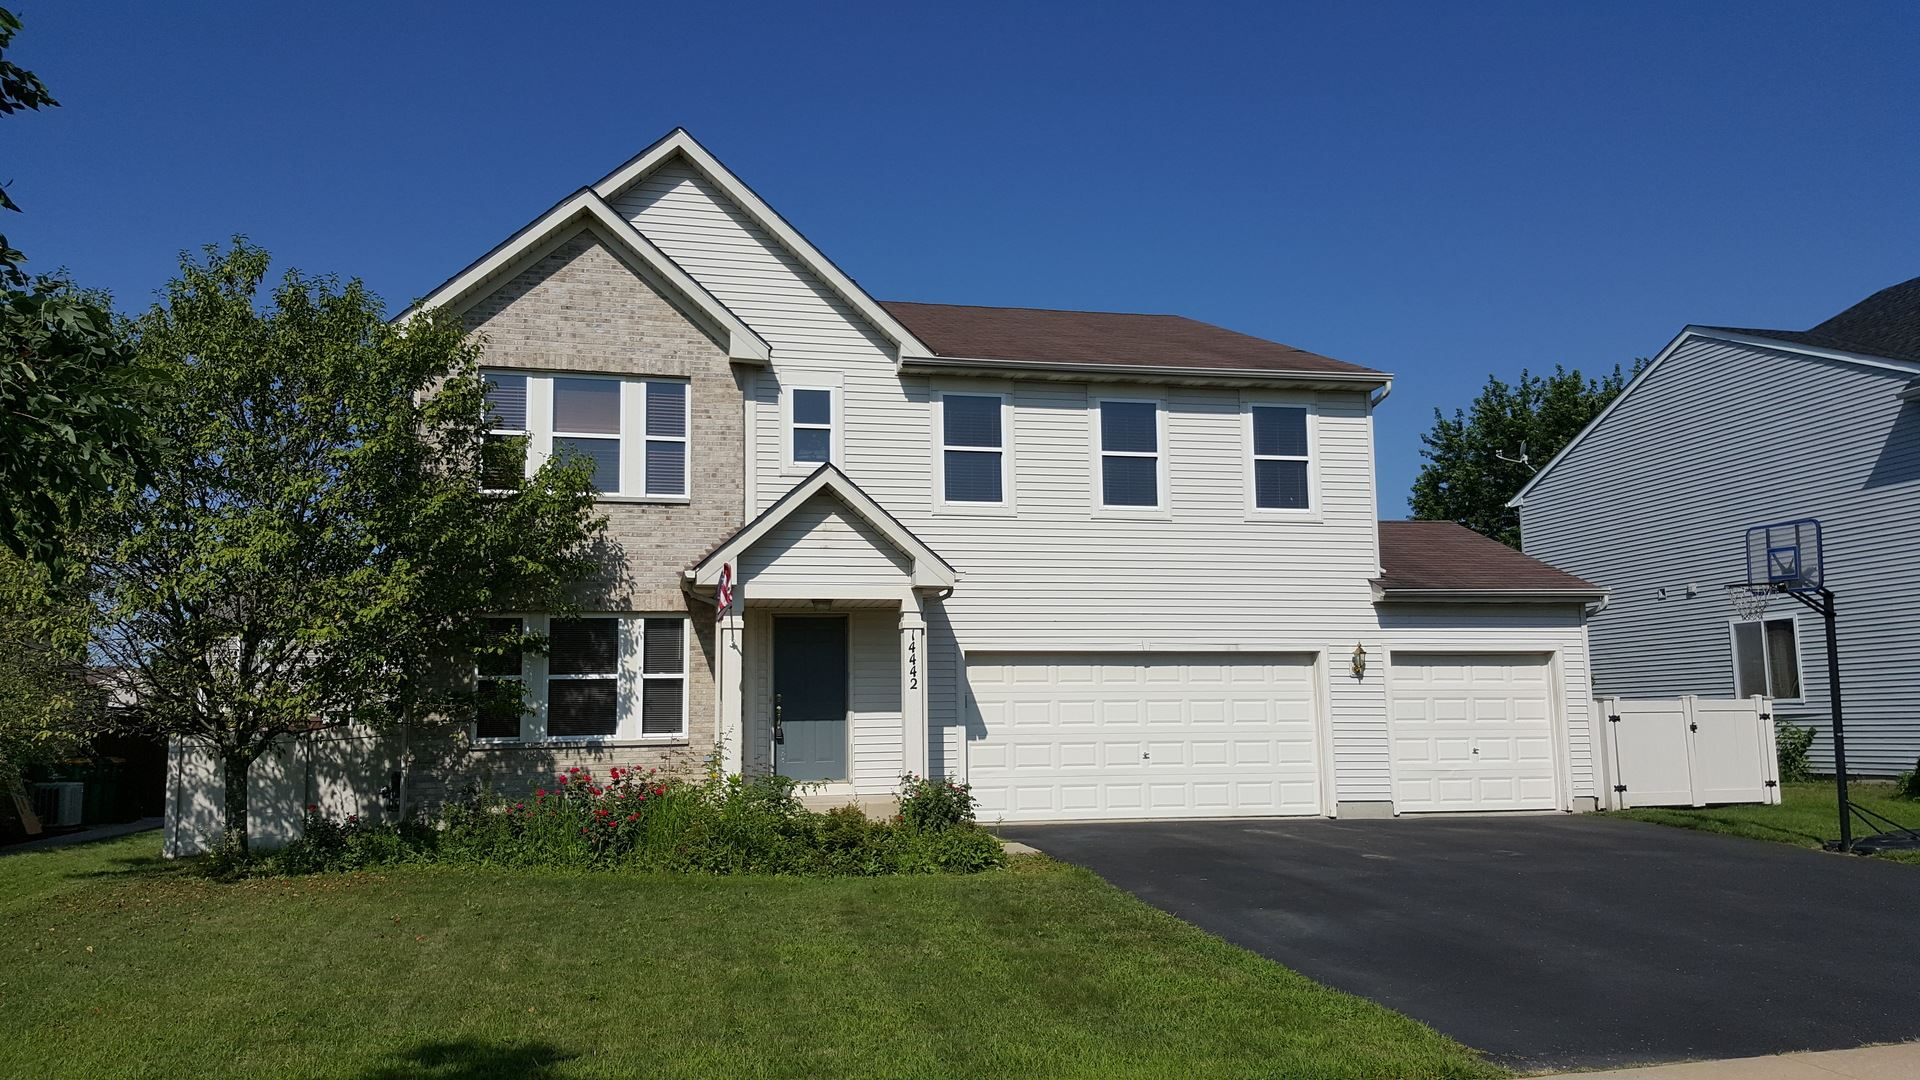 14442 INDEPENDENCE Drive, Plainfield, IL 60544 - #: 10814693